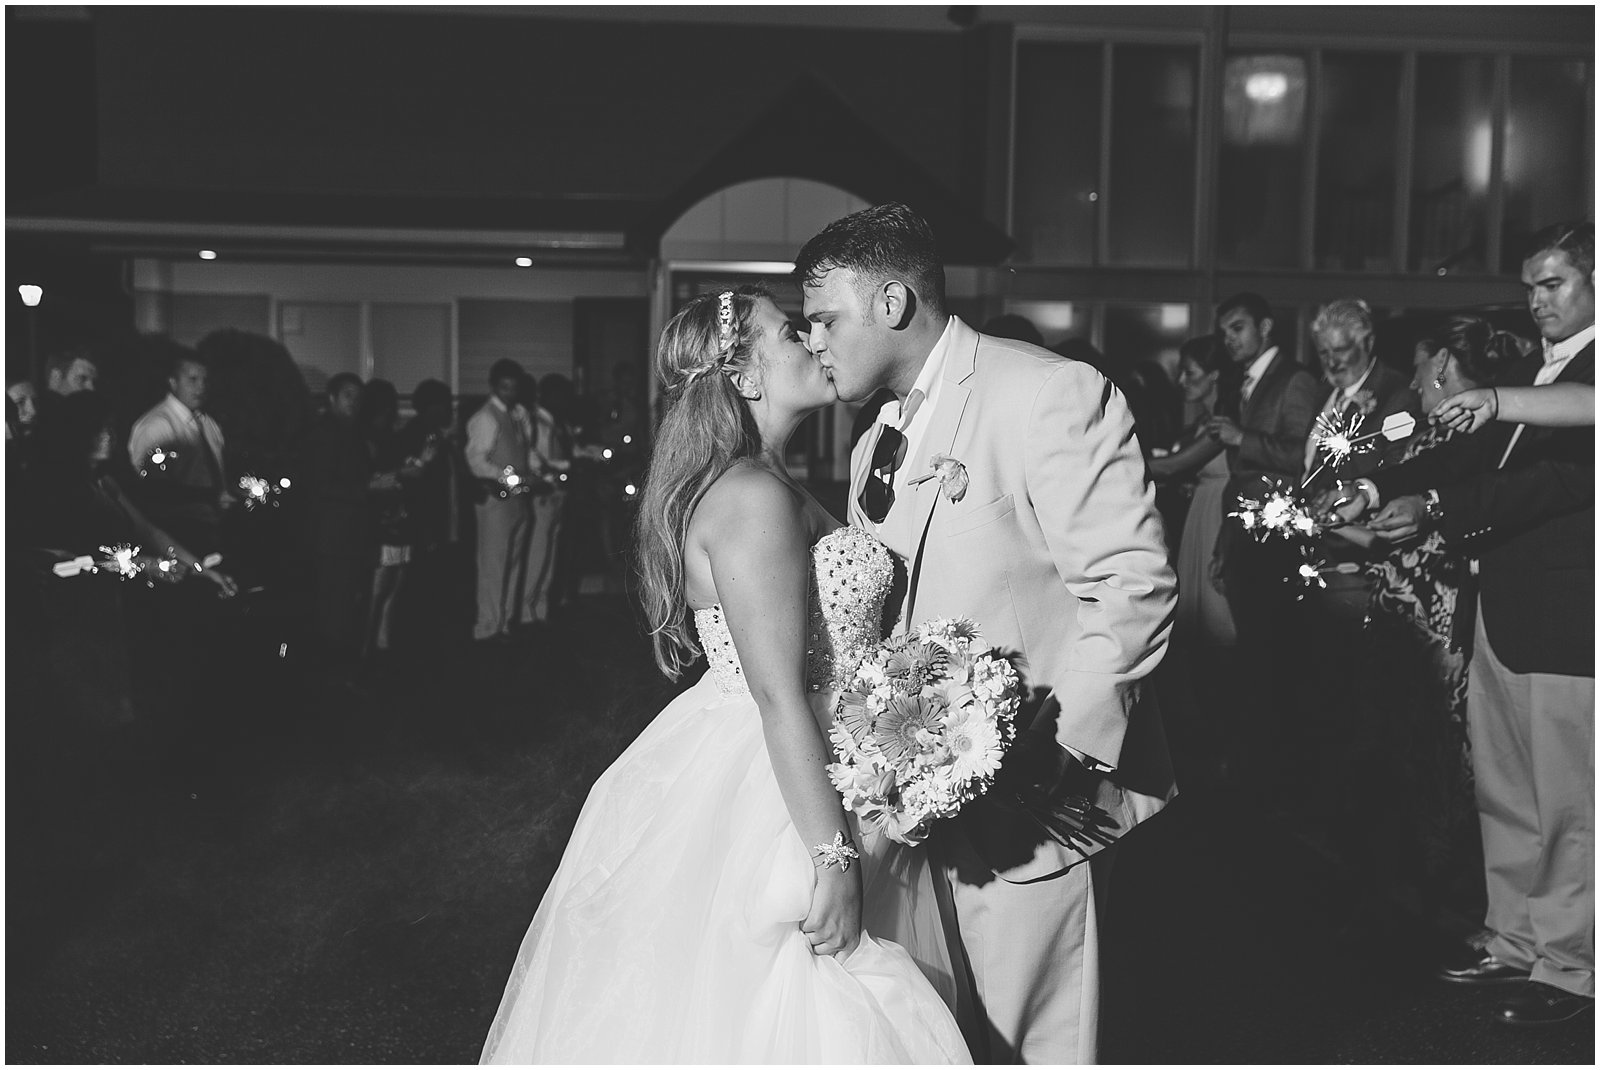 jessica_ryan_photography_wedding_virginia_beach_virginia_wedding_photographer_candid_wedding_photography_lifestyle_photojournalistic_real_moments_0115